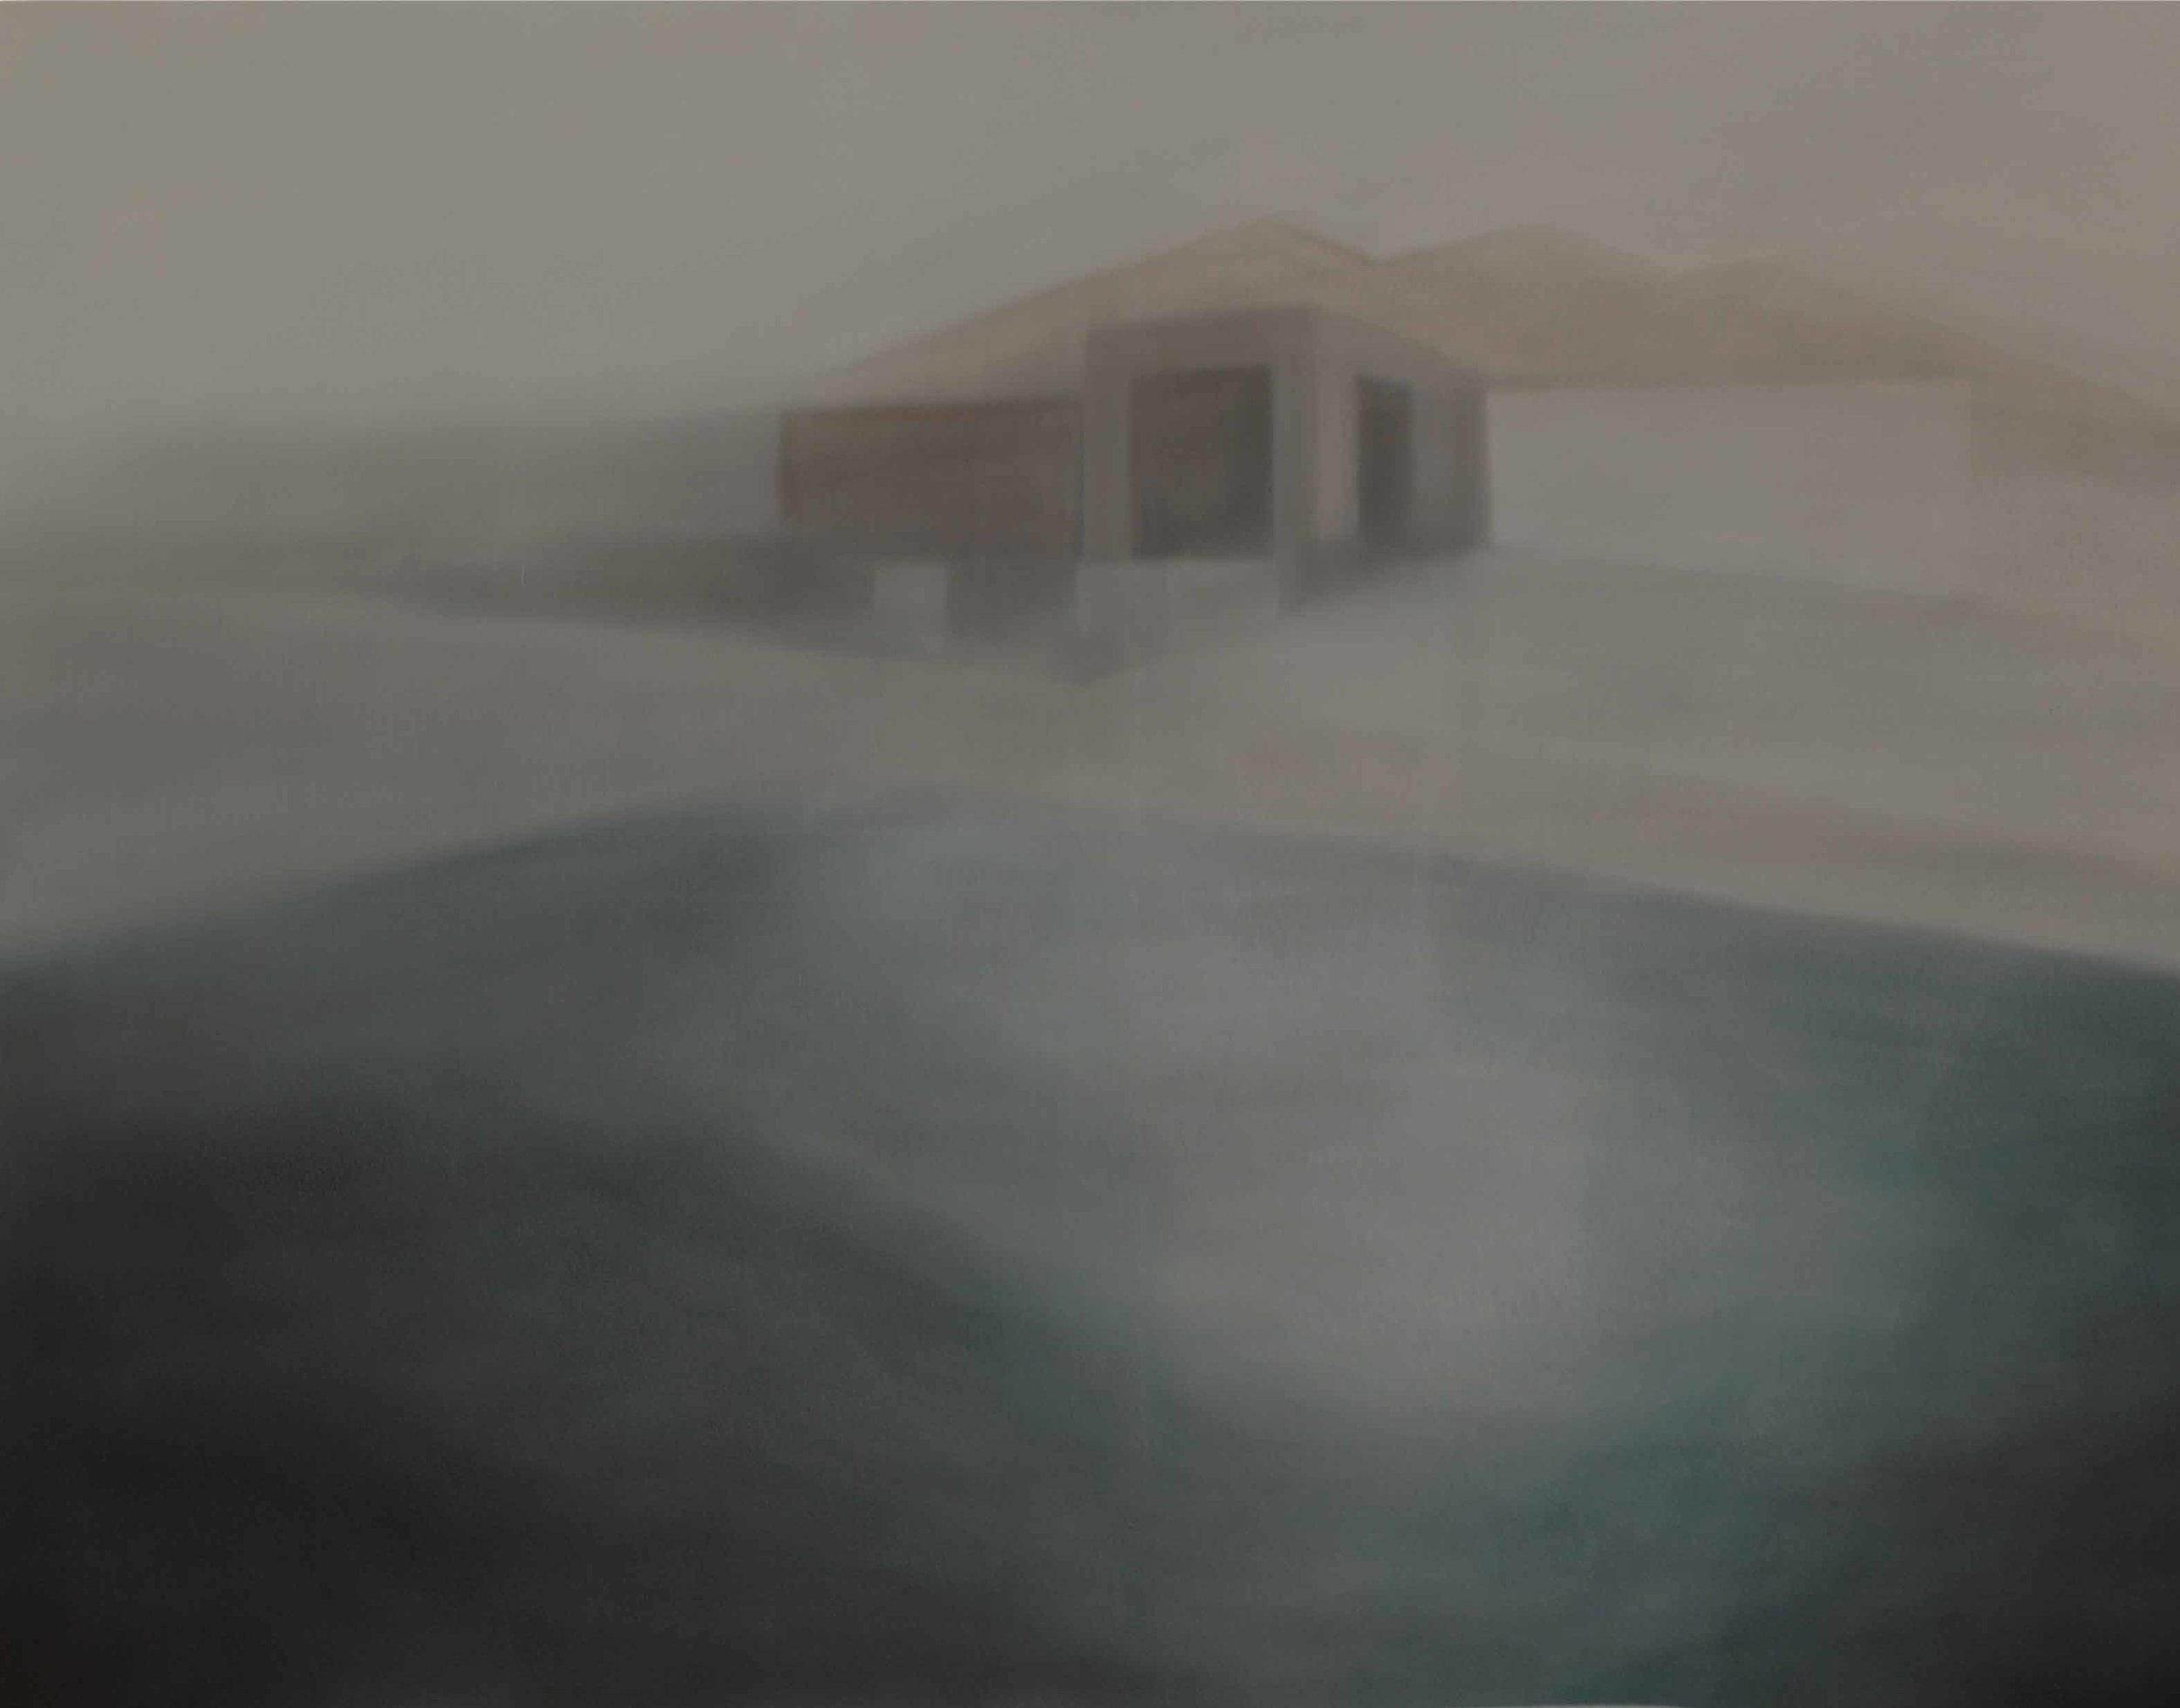 The View, 2012, oil on canvas, 110 x 140cm